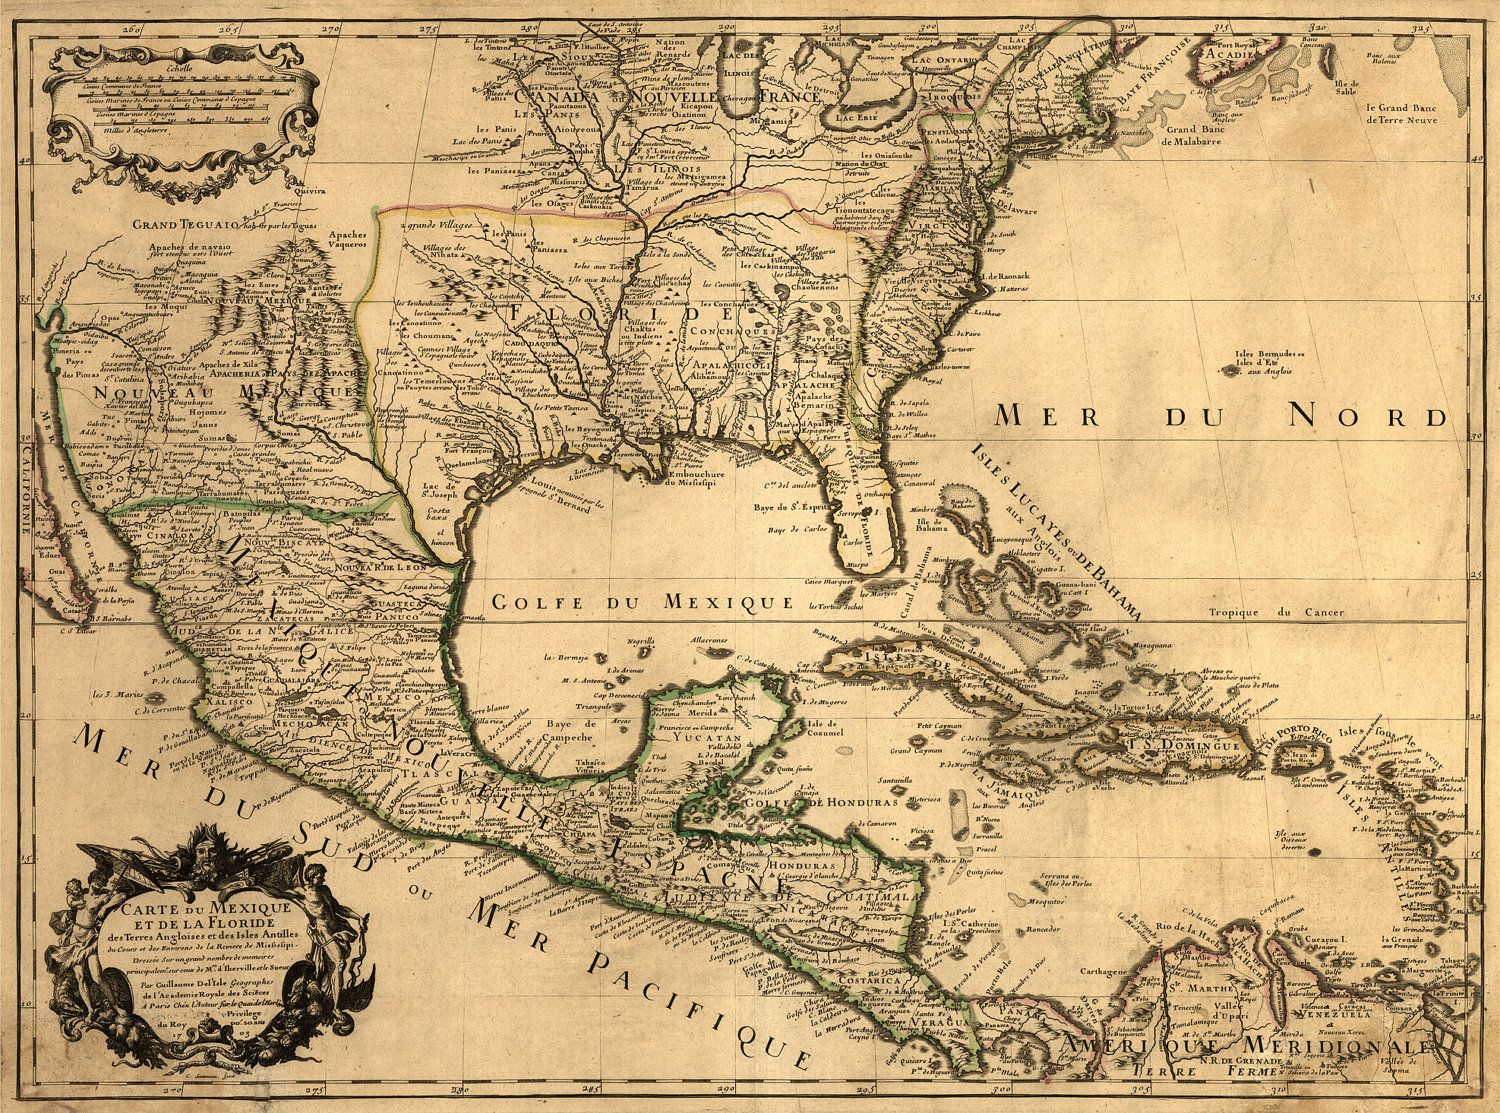 1703 U.S. MAP Nice Map 13x17 Old America Mexico Gulf - Unique Wall ...